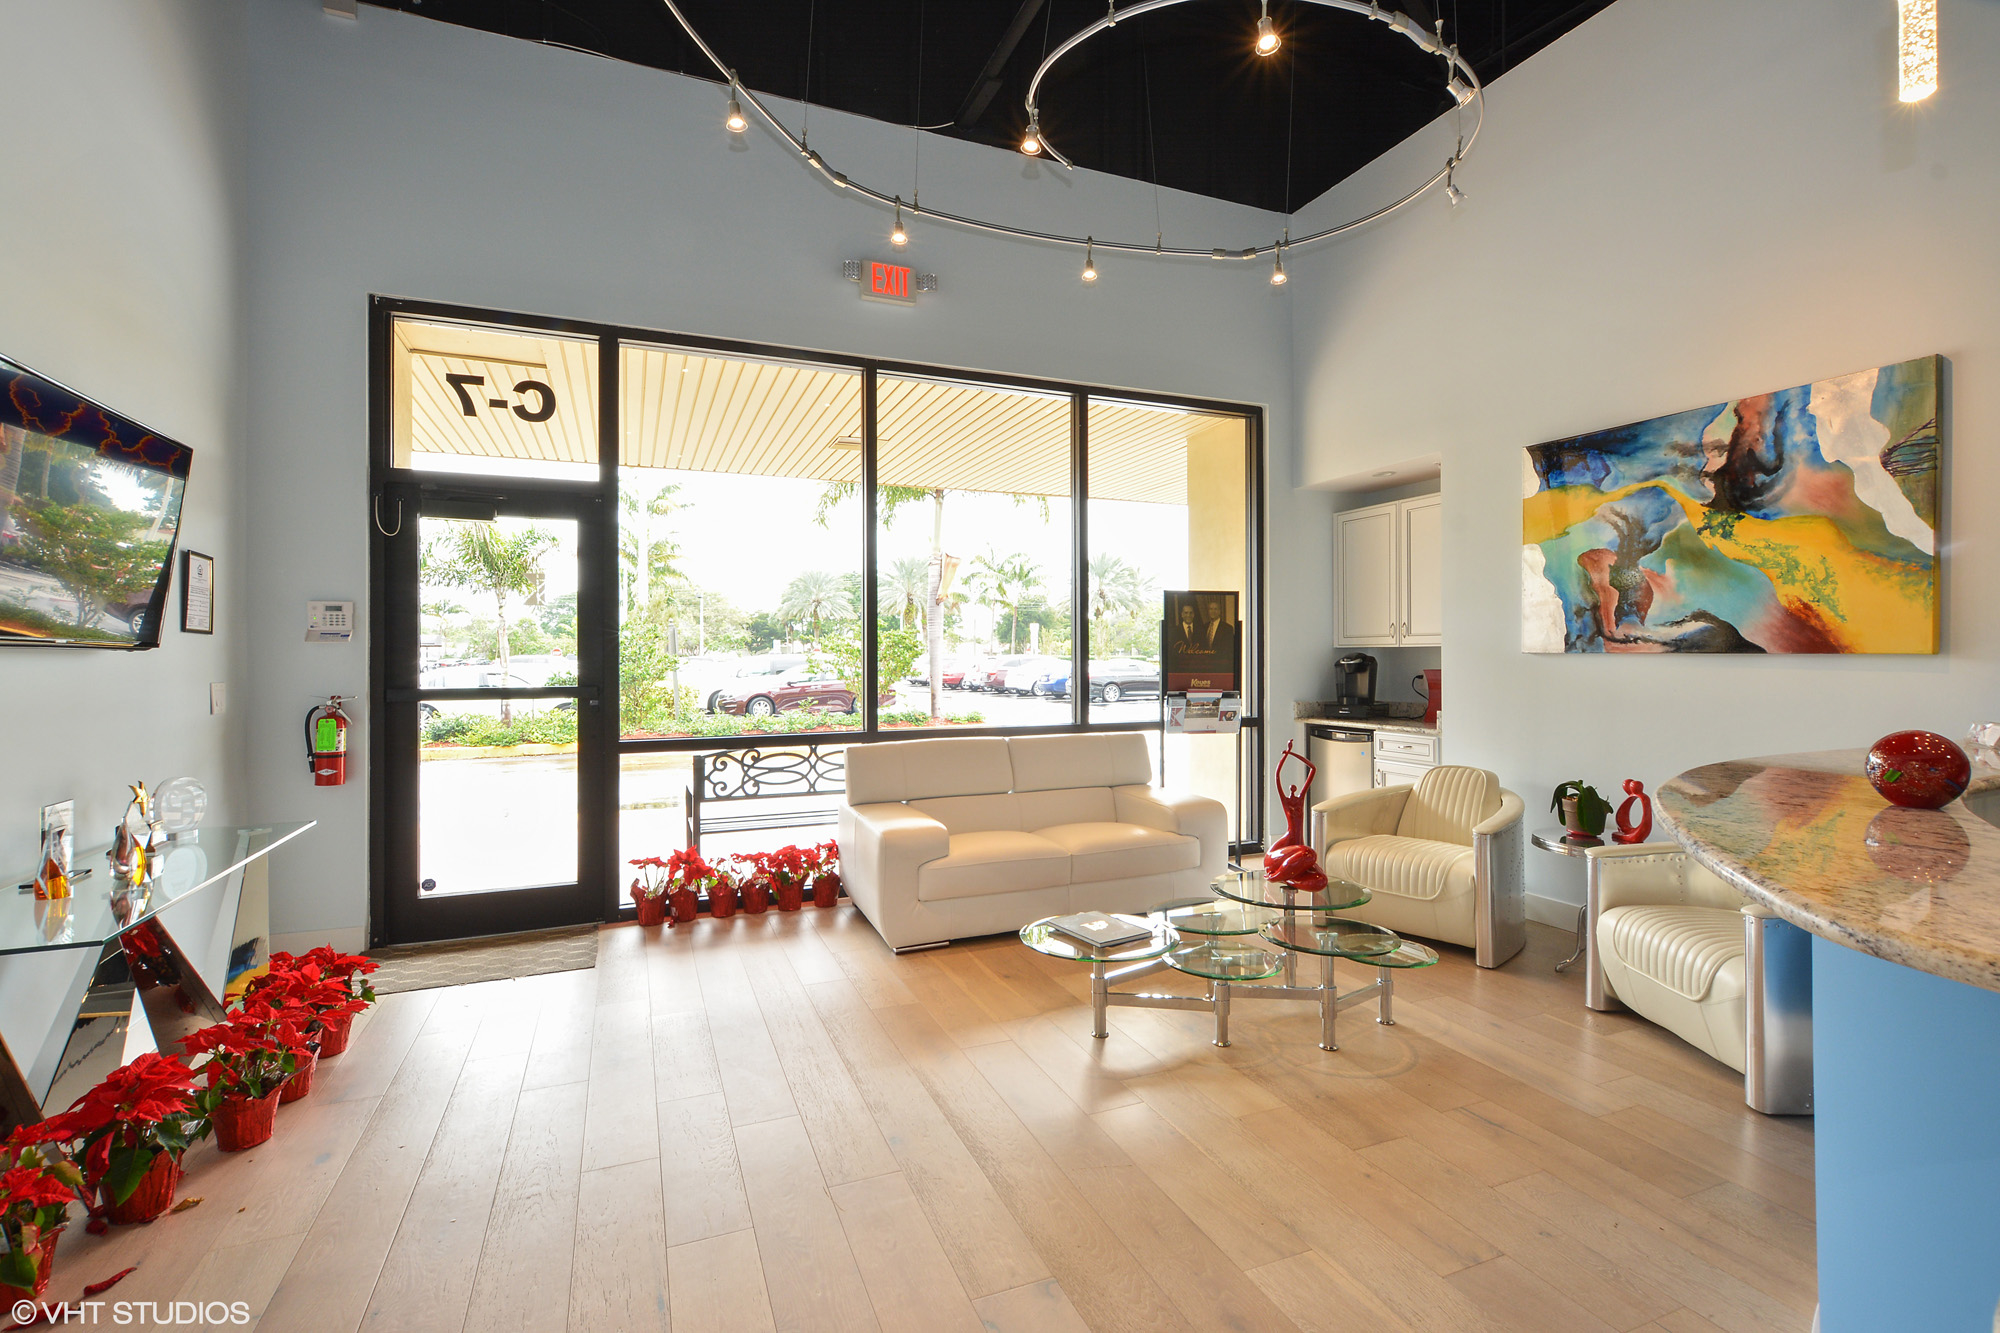 The keyes company coupons near me in boca raton 8coupons for A suite salon boca raton fl